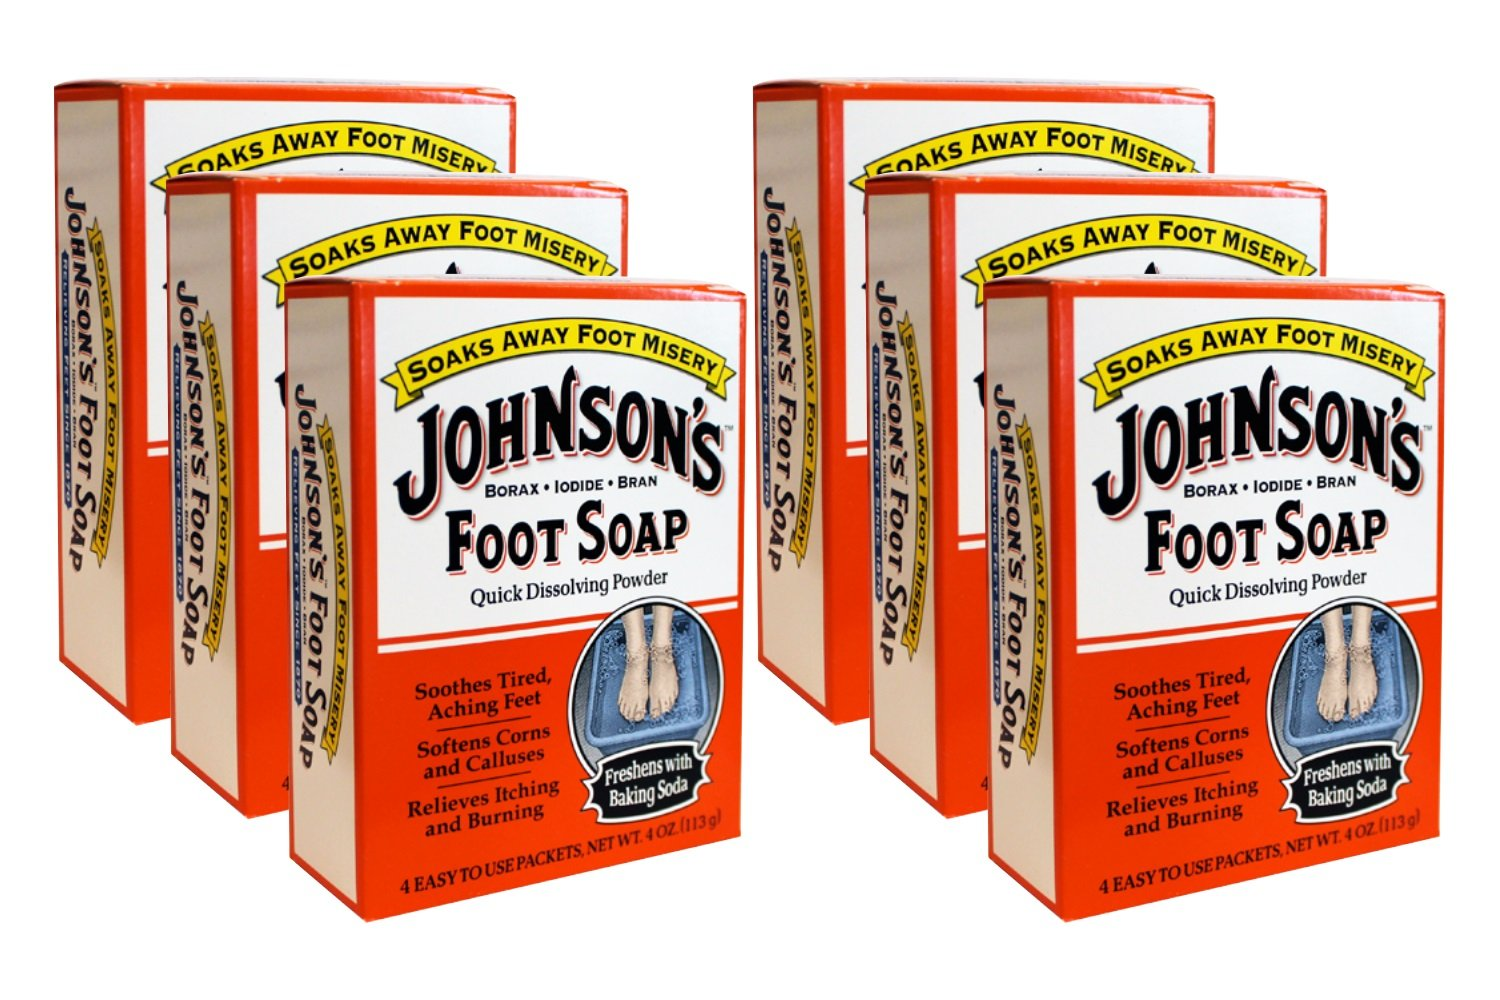 Johnson's Foot Soap Quick Dissolving Powder, Pack of 6 (24 Easy To Use Packets) Choice